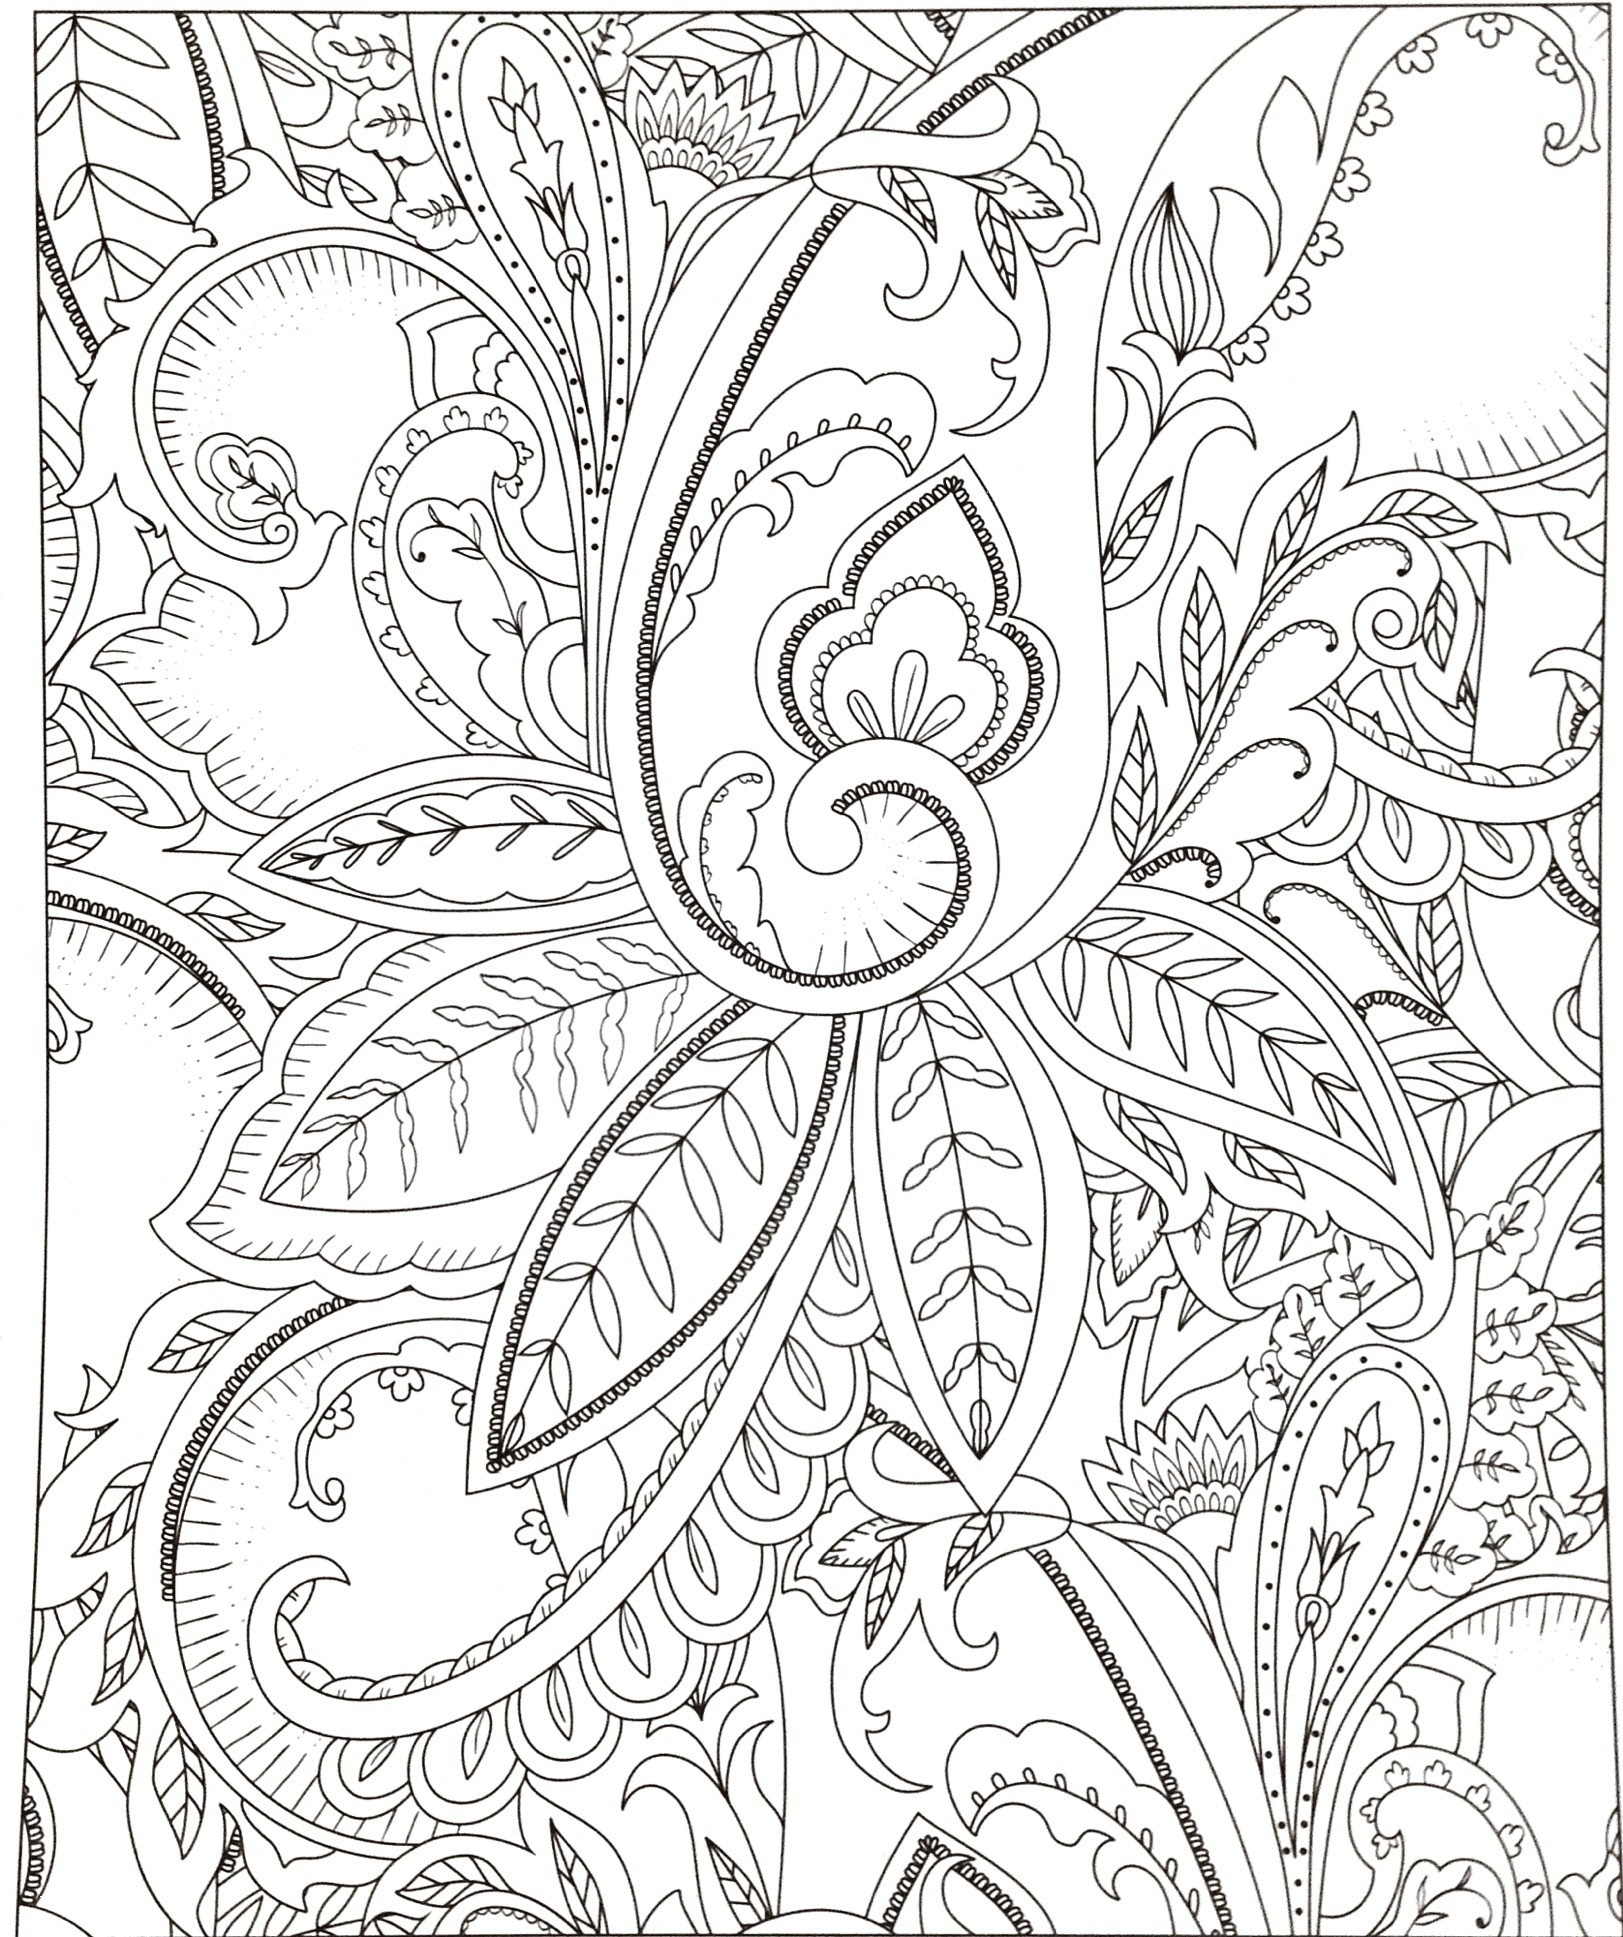 Make Your Own Coloring Pages From Photos Free  Collection 5n - Free Download